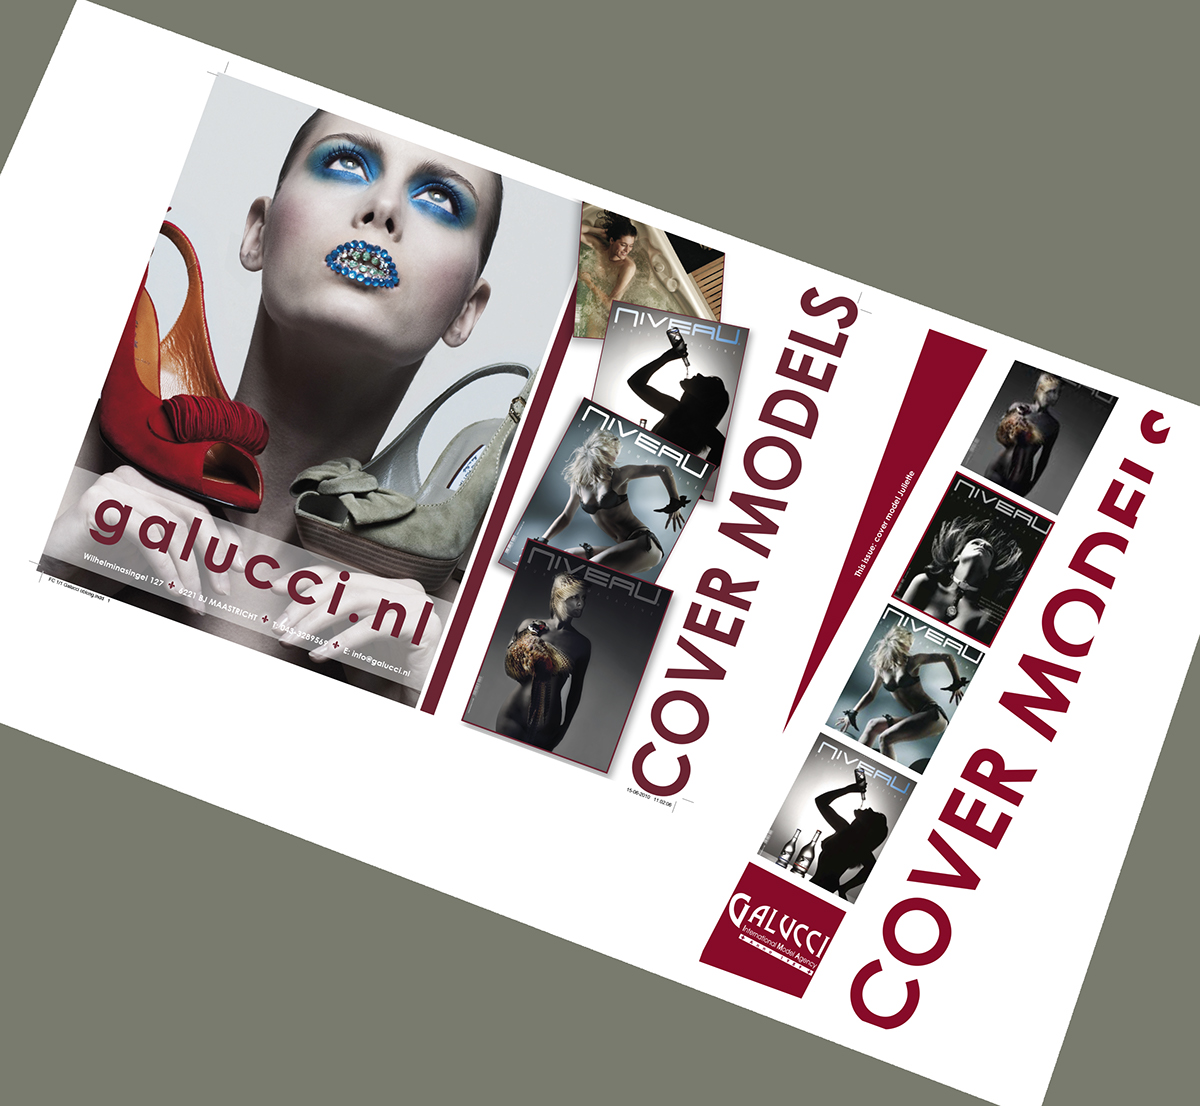 setcards flyers newsletters Website galucci galucci model agency